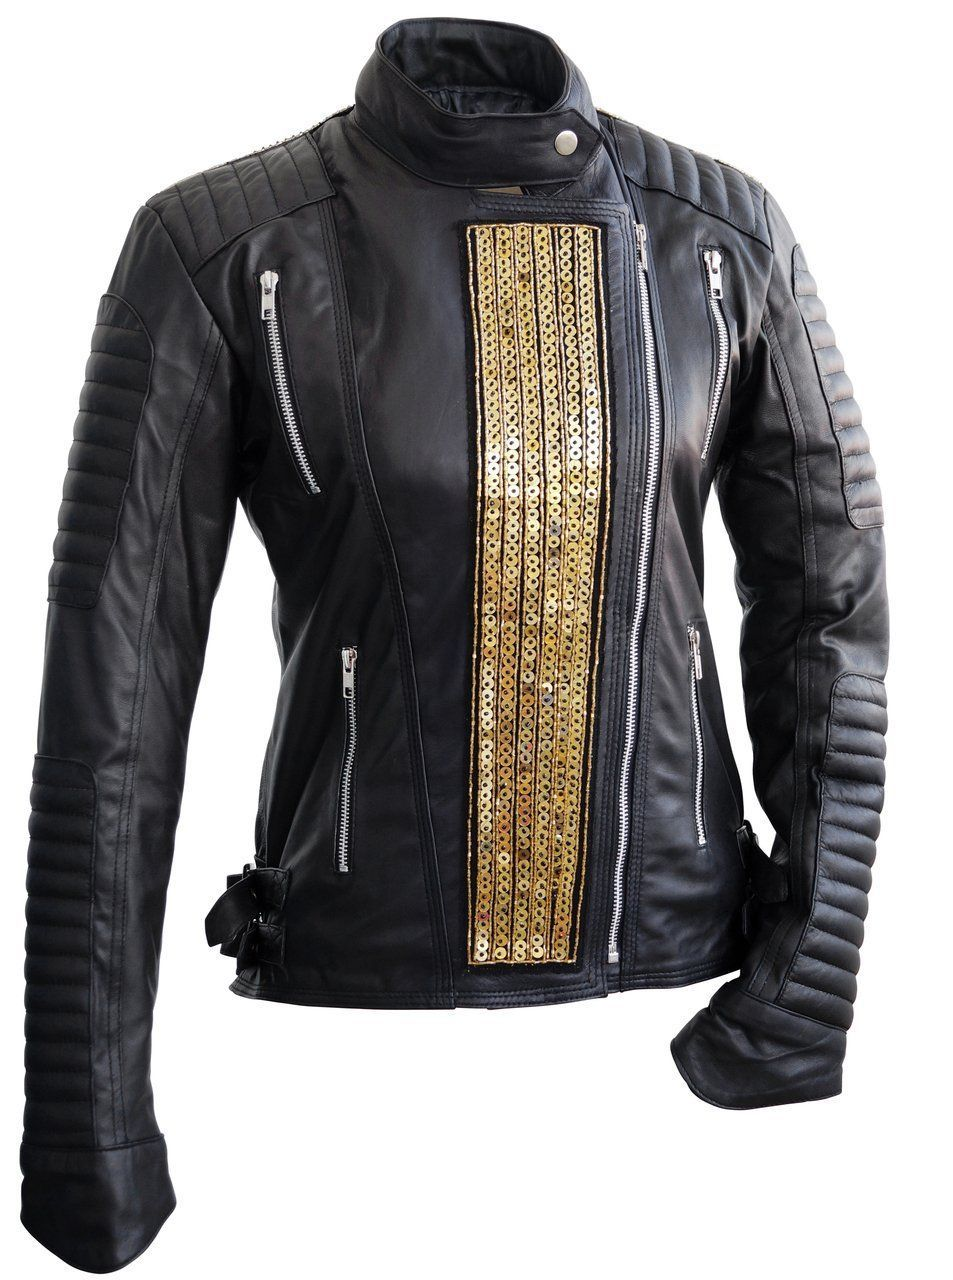 Leather Skin Women Black Genuine Leather Jacket with Gold